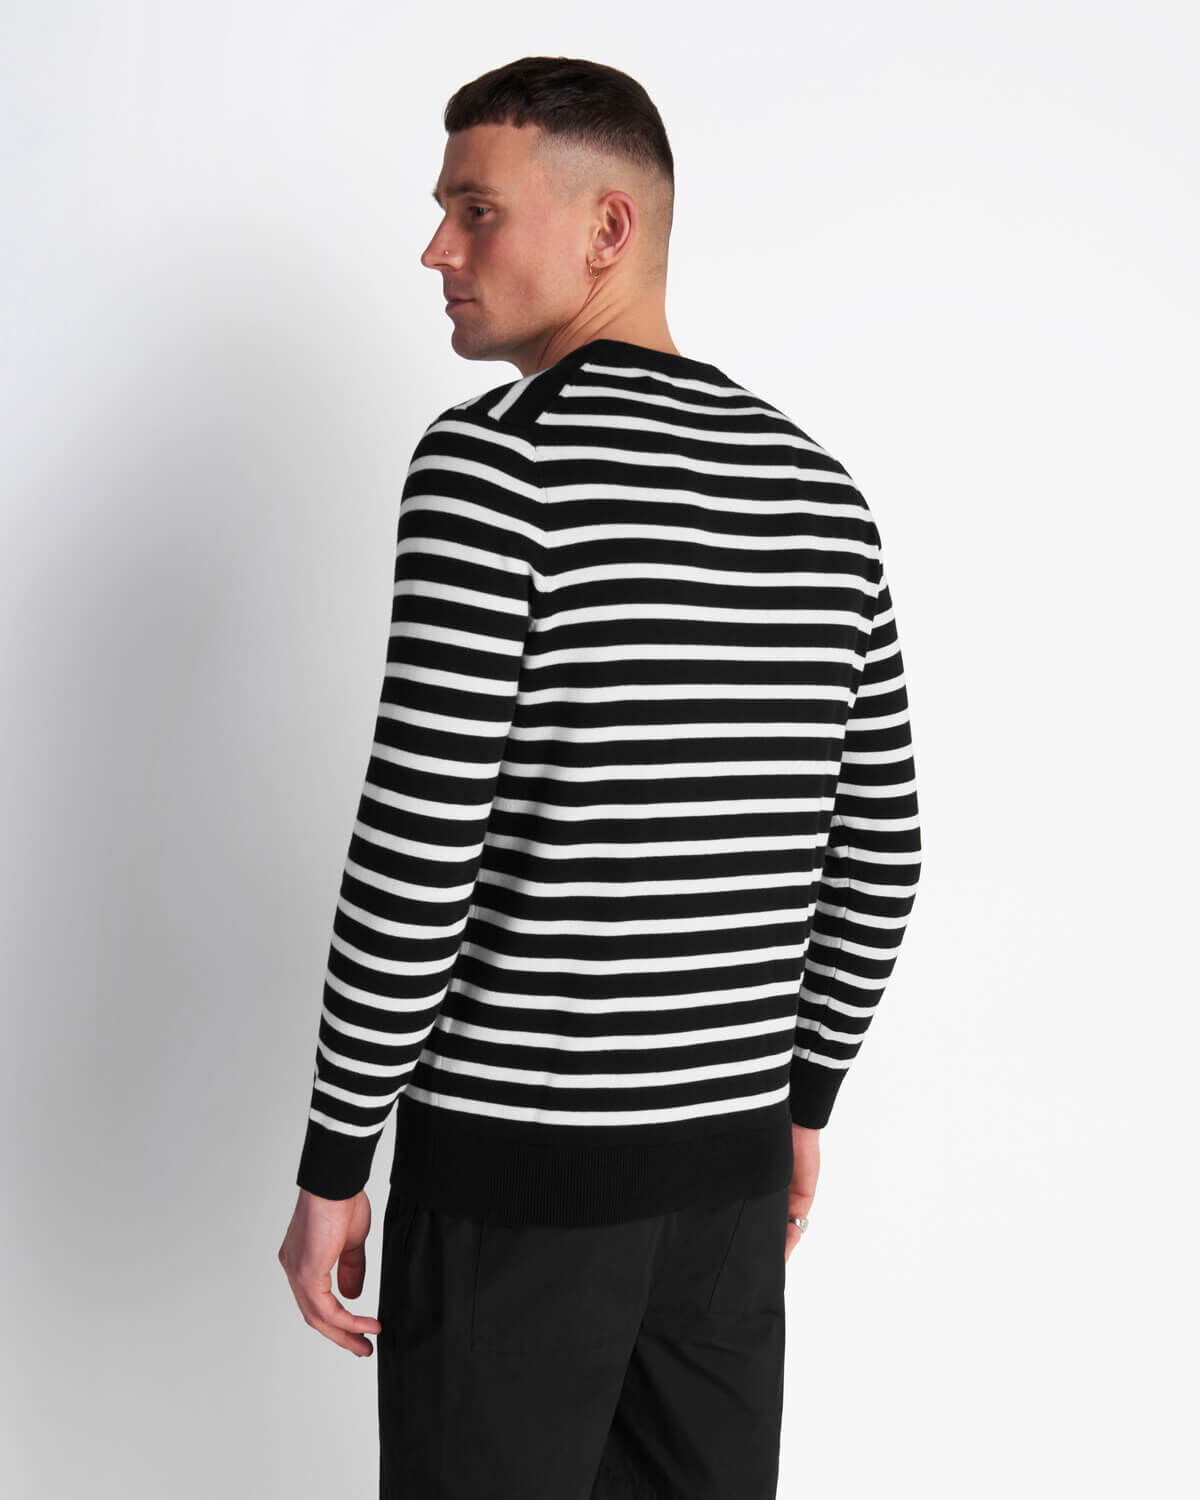 Lyle-and-Scott-Men-Breton-Stripe-Jumper-Cotton thumbnail 8